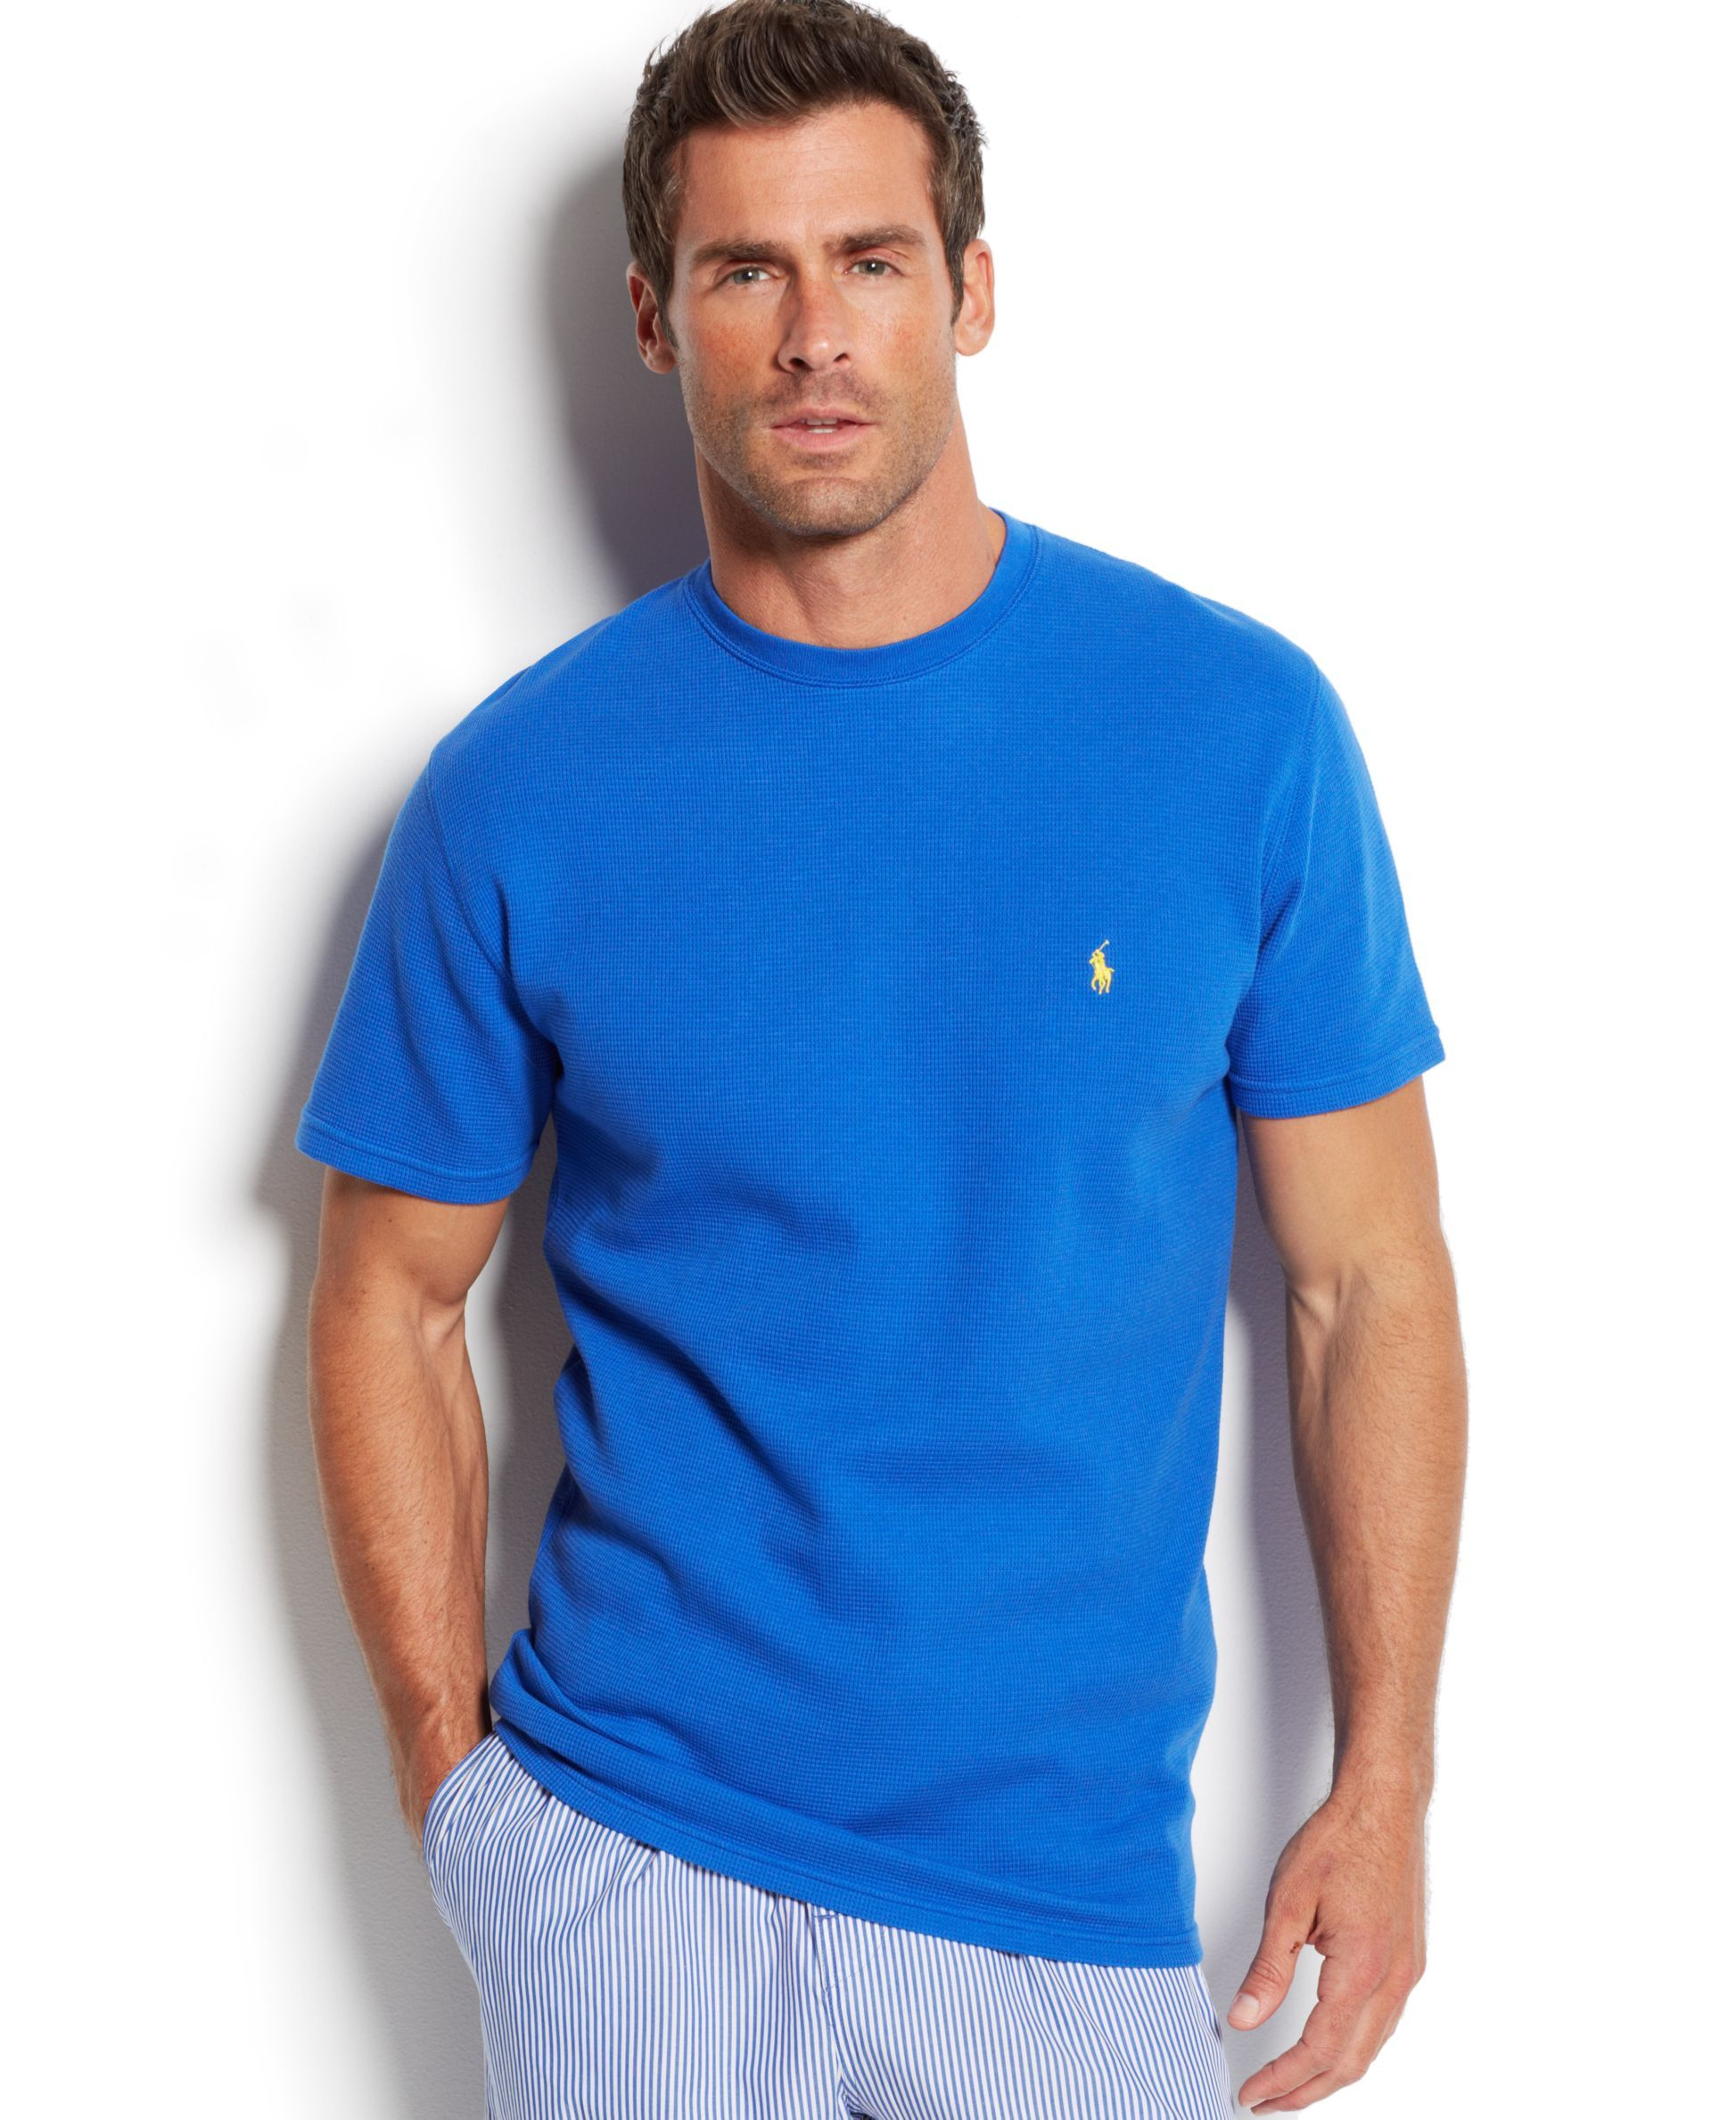 Polo Ralph Lauren Waffle Knit Thermal Crew Neck T Shirt